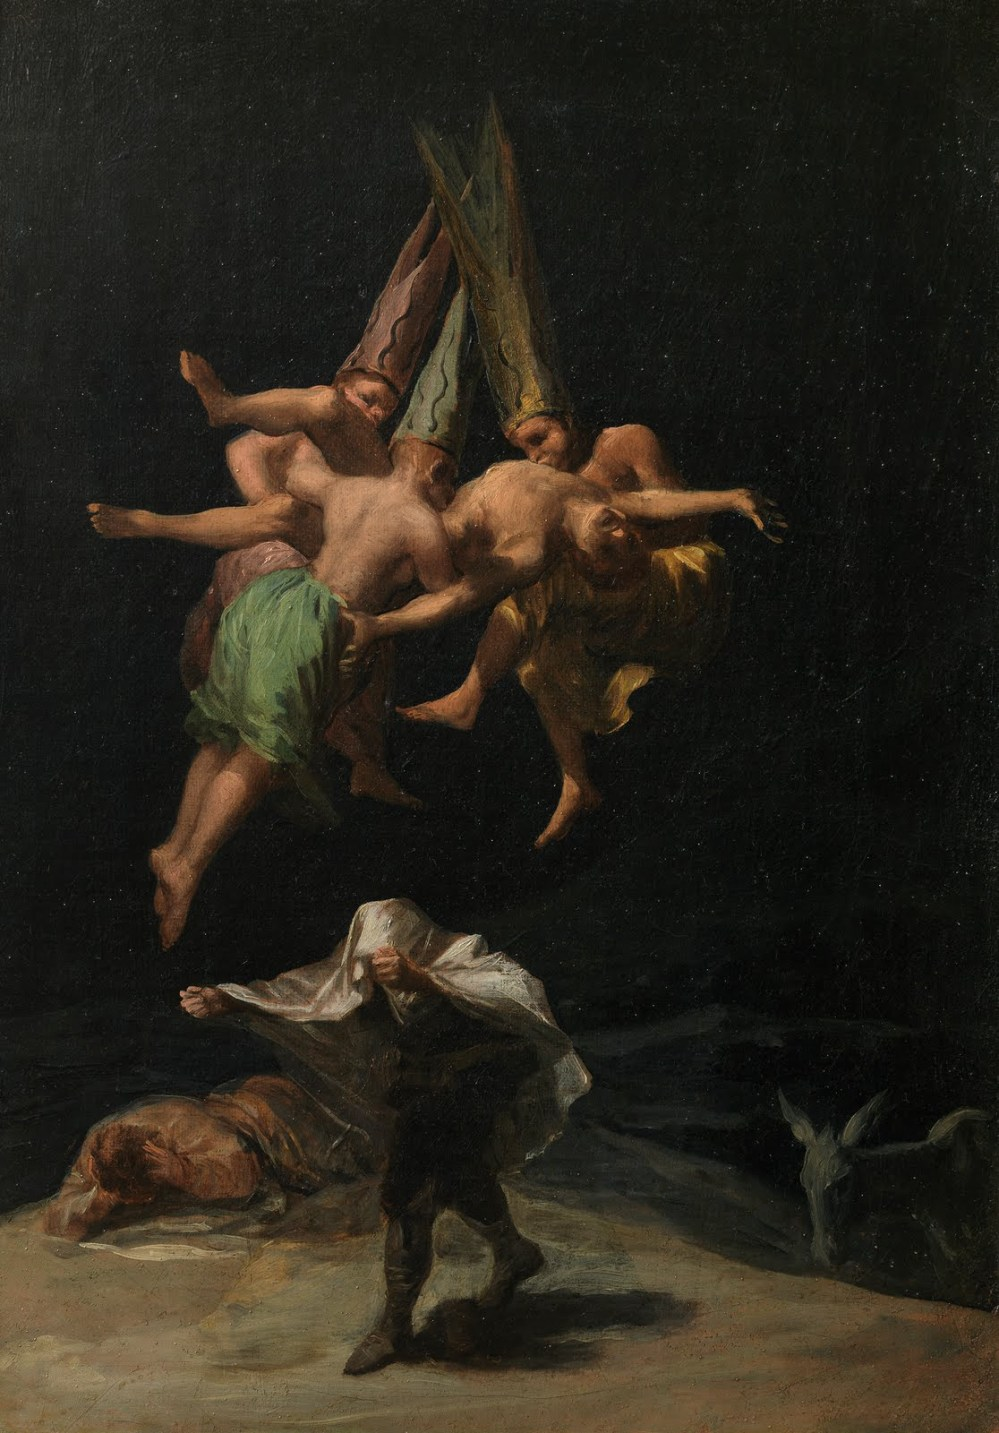 francisco-de-goya-witches-in-the-air-vuelo-de-brujas